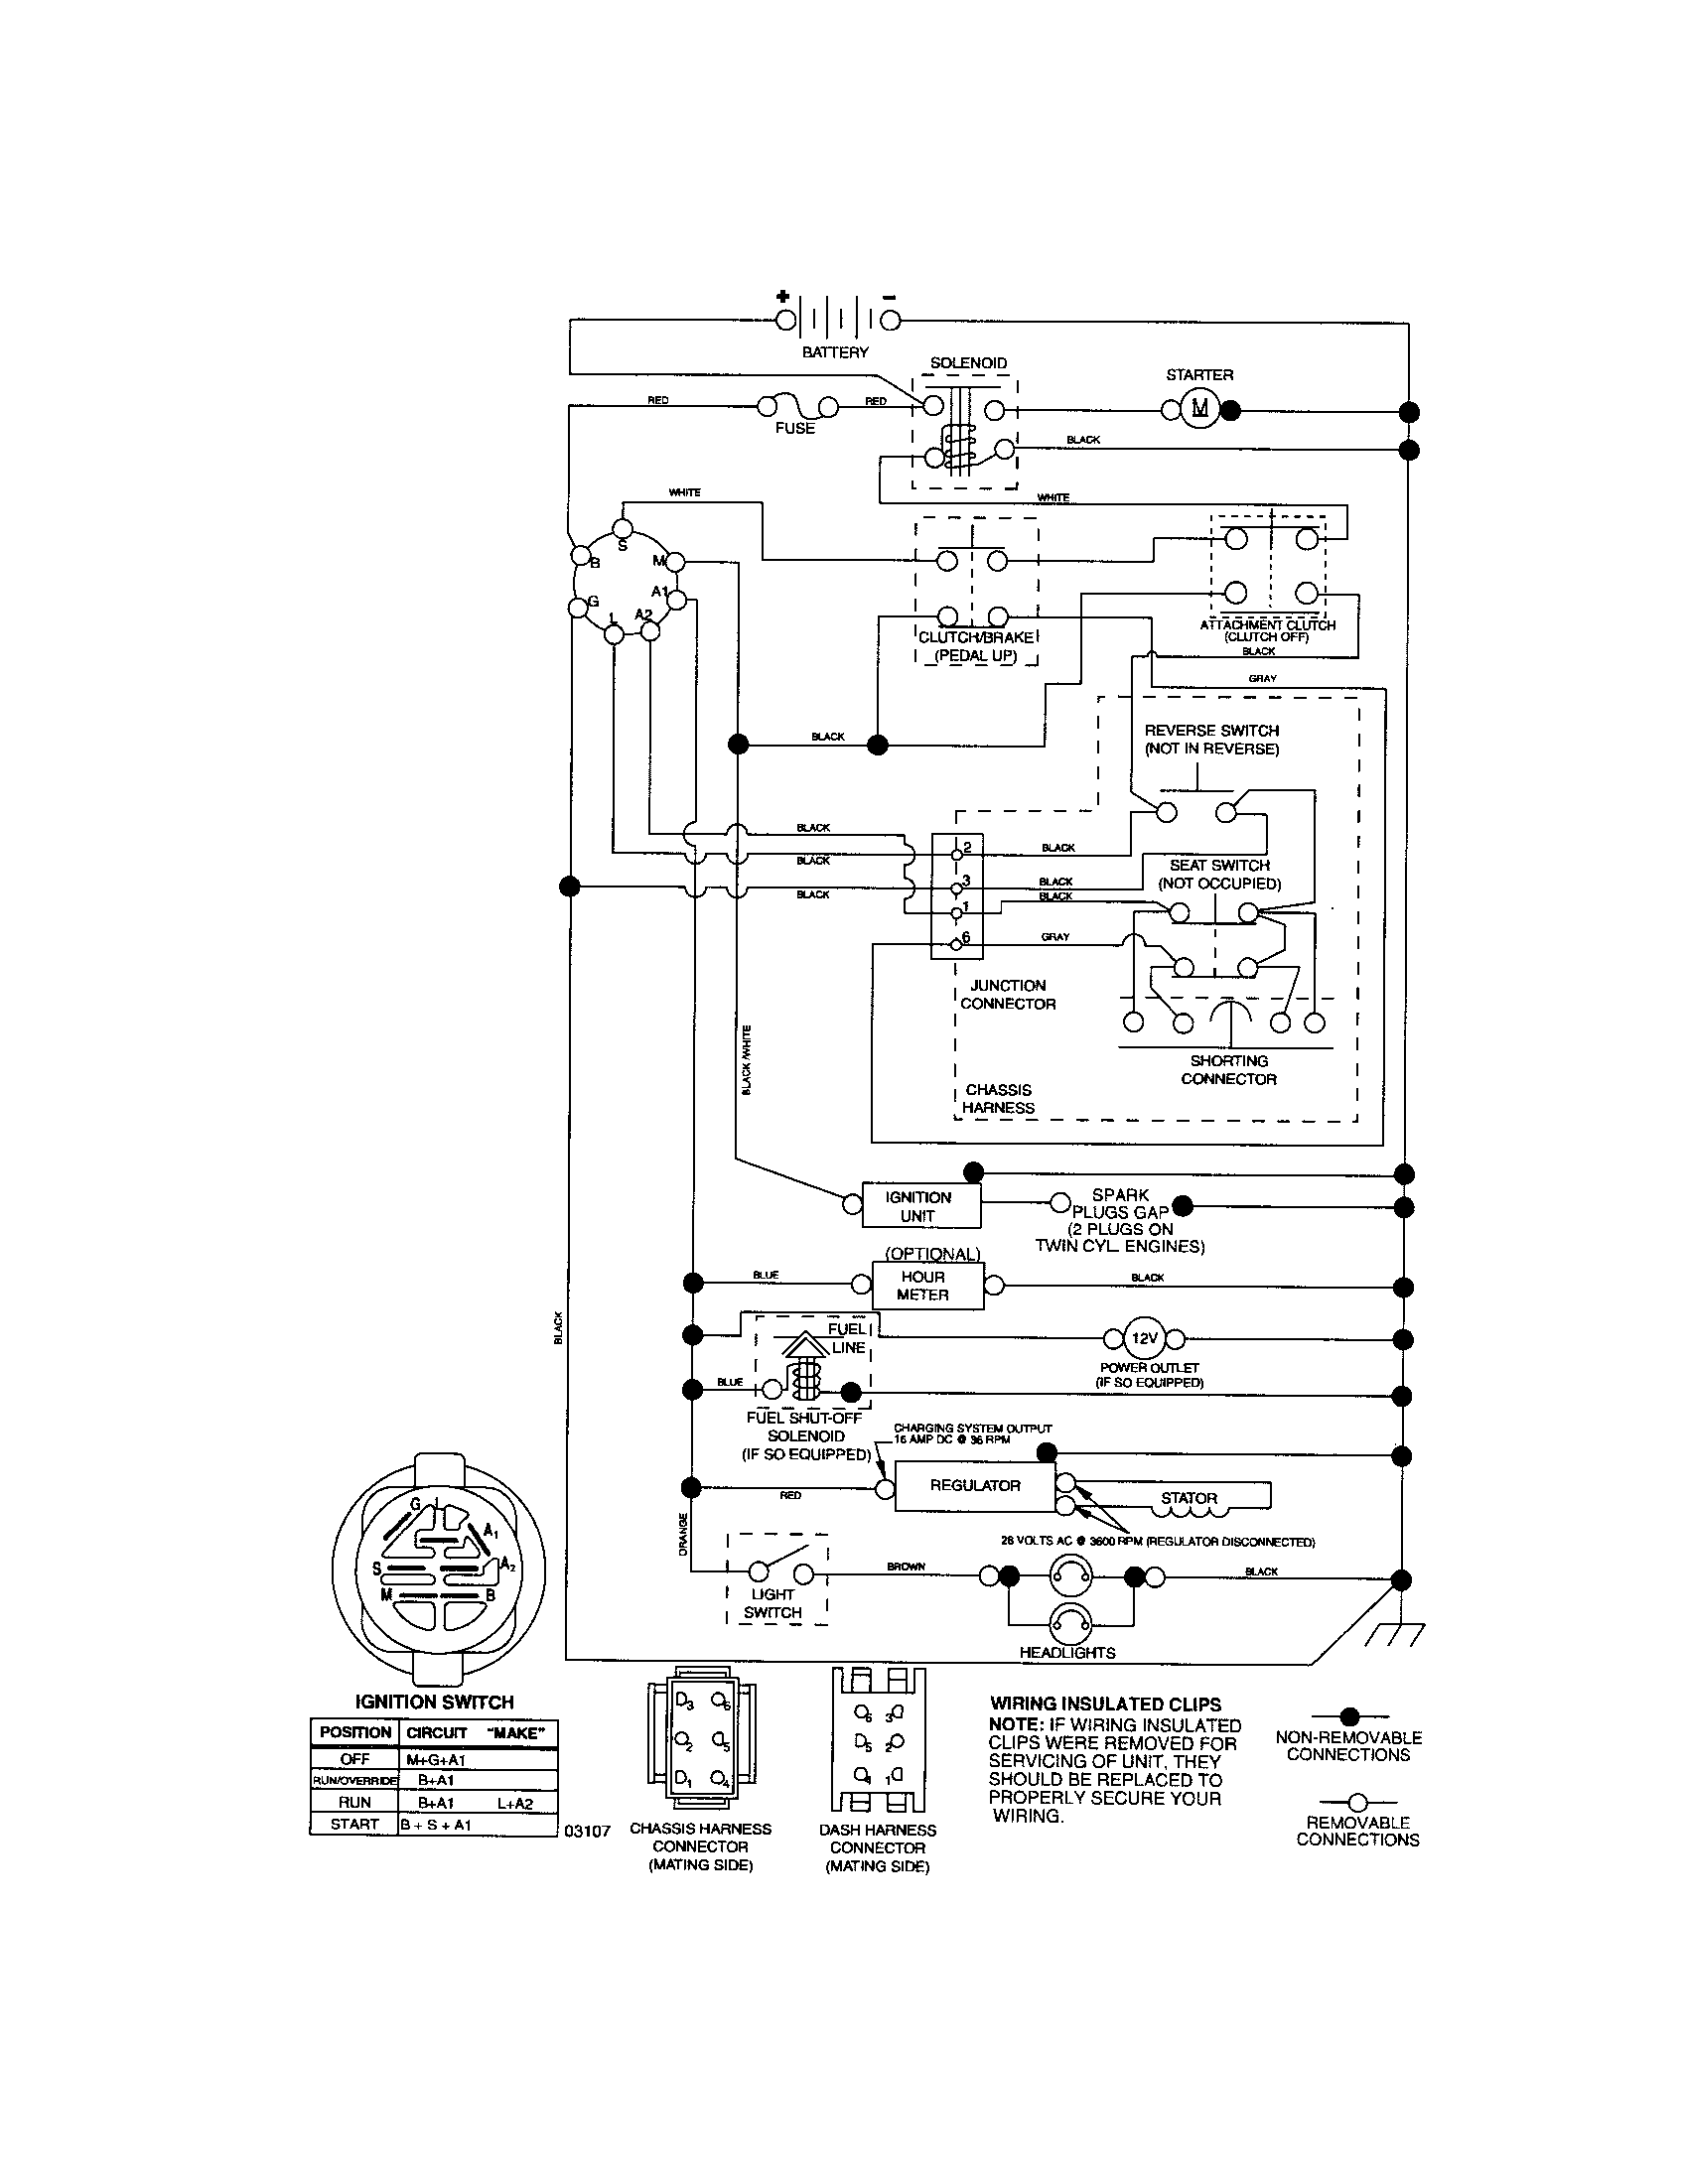 craftsman riding mower electrical diagram wiring diagram craftsman white lawn tractors model year craftsman riding mower